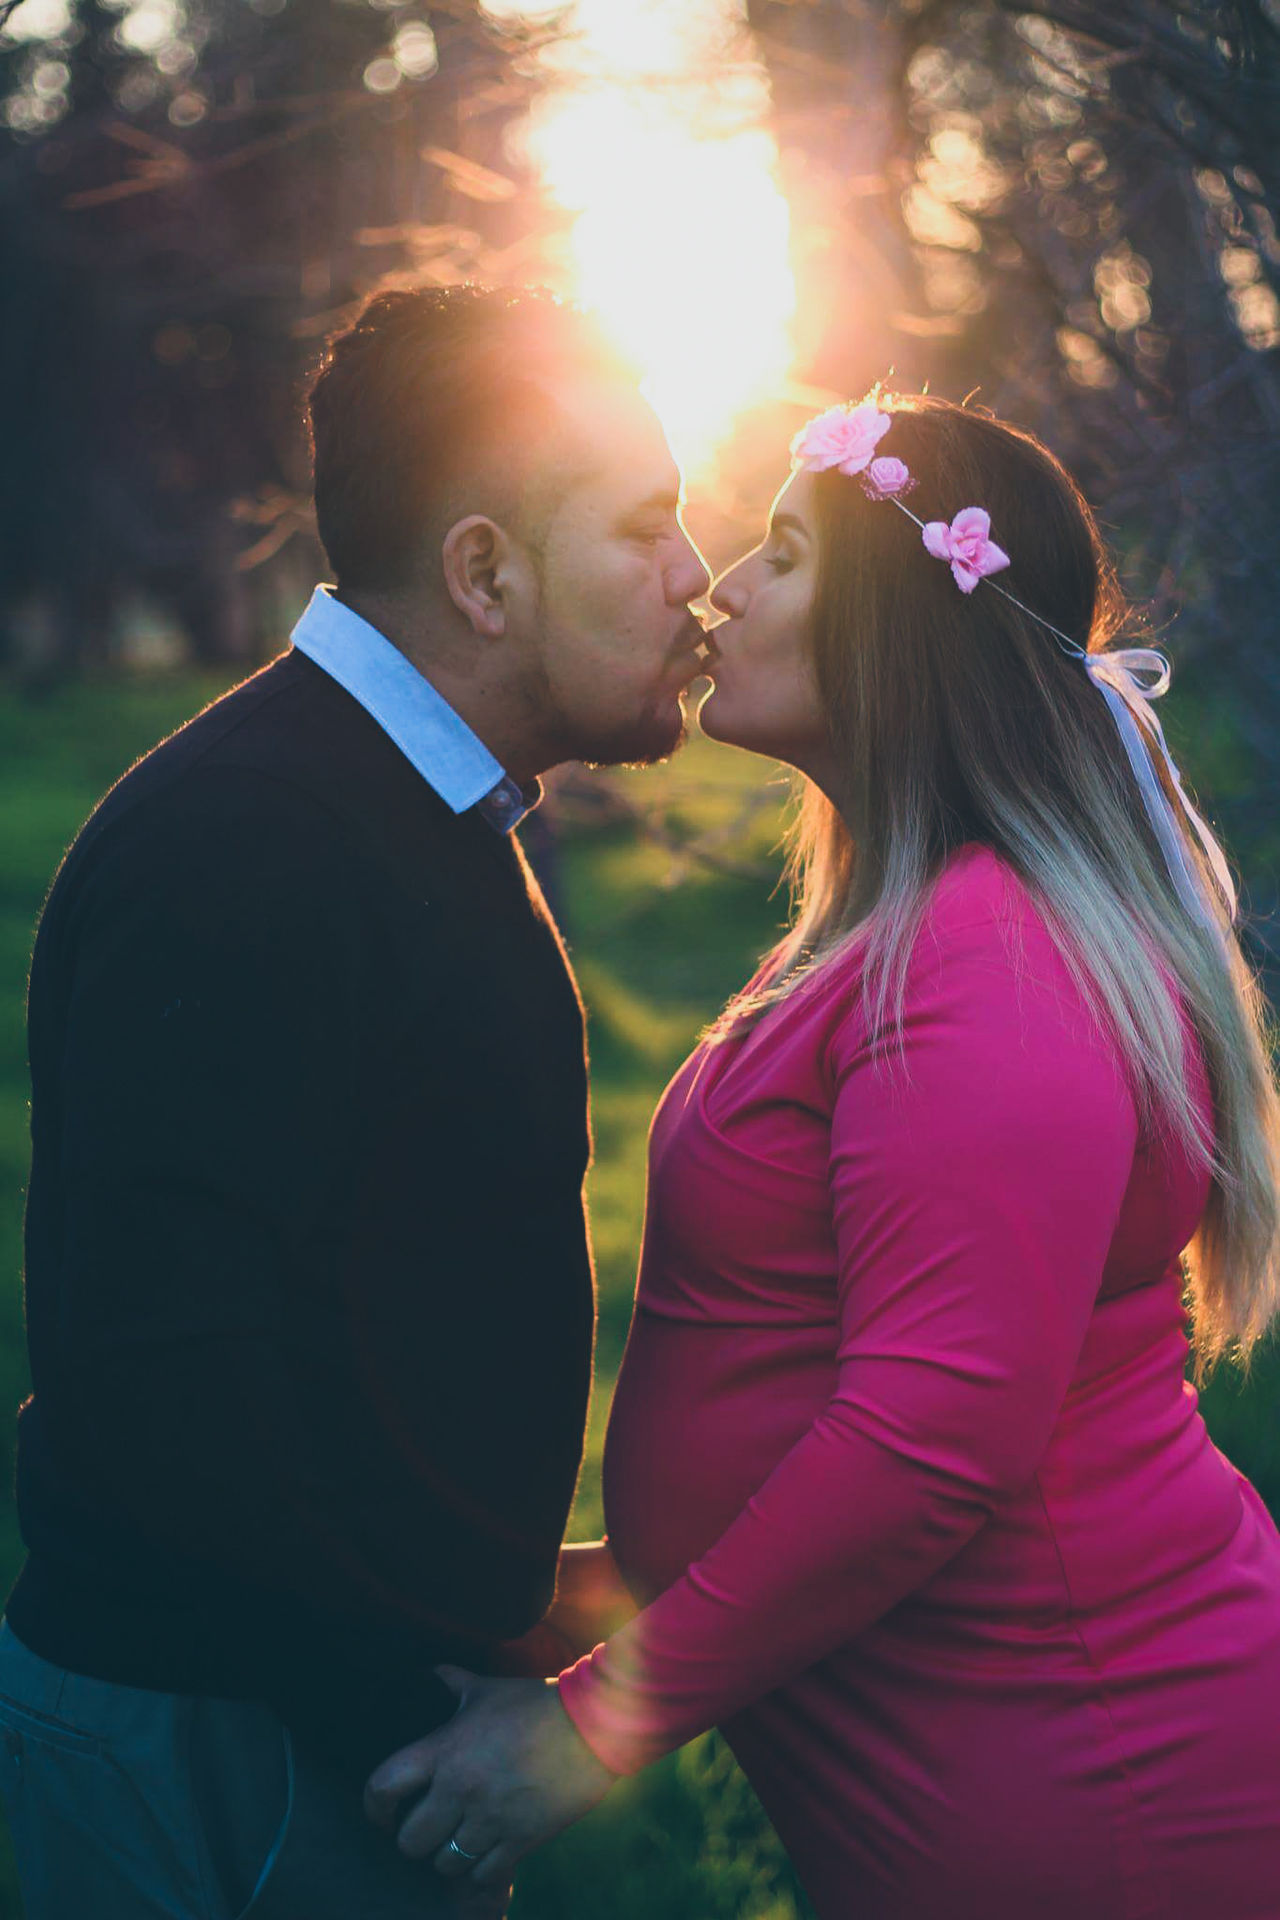 Lovecouple Happymarriage Golden Hour Goldenhourphotography Happiness Romance Goals EyeEm EyeEm Gallery Eye4photography  Eyeemphotography Eye Em Nature Lover Marriage  Love Portrait Photography Outdoor Photography Canon50mm18 Canonportrait Photooftheday Sunset Story Kiss Pregant